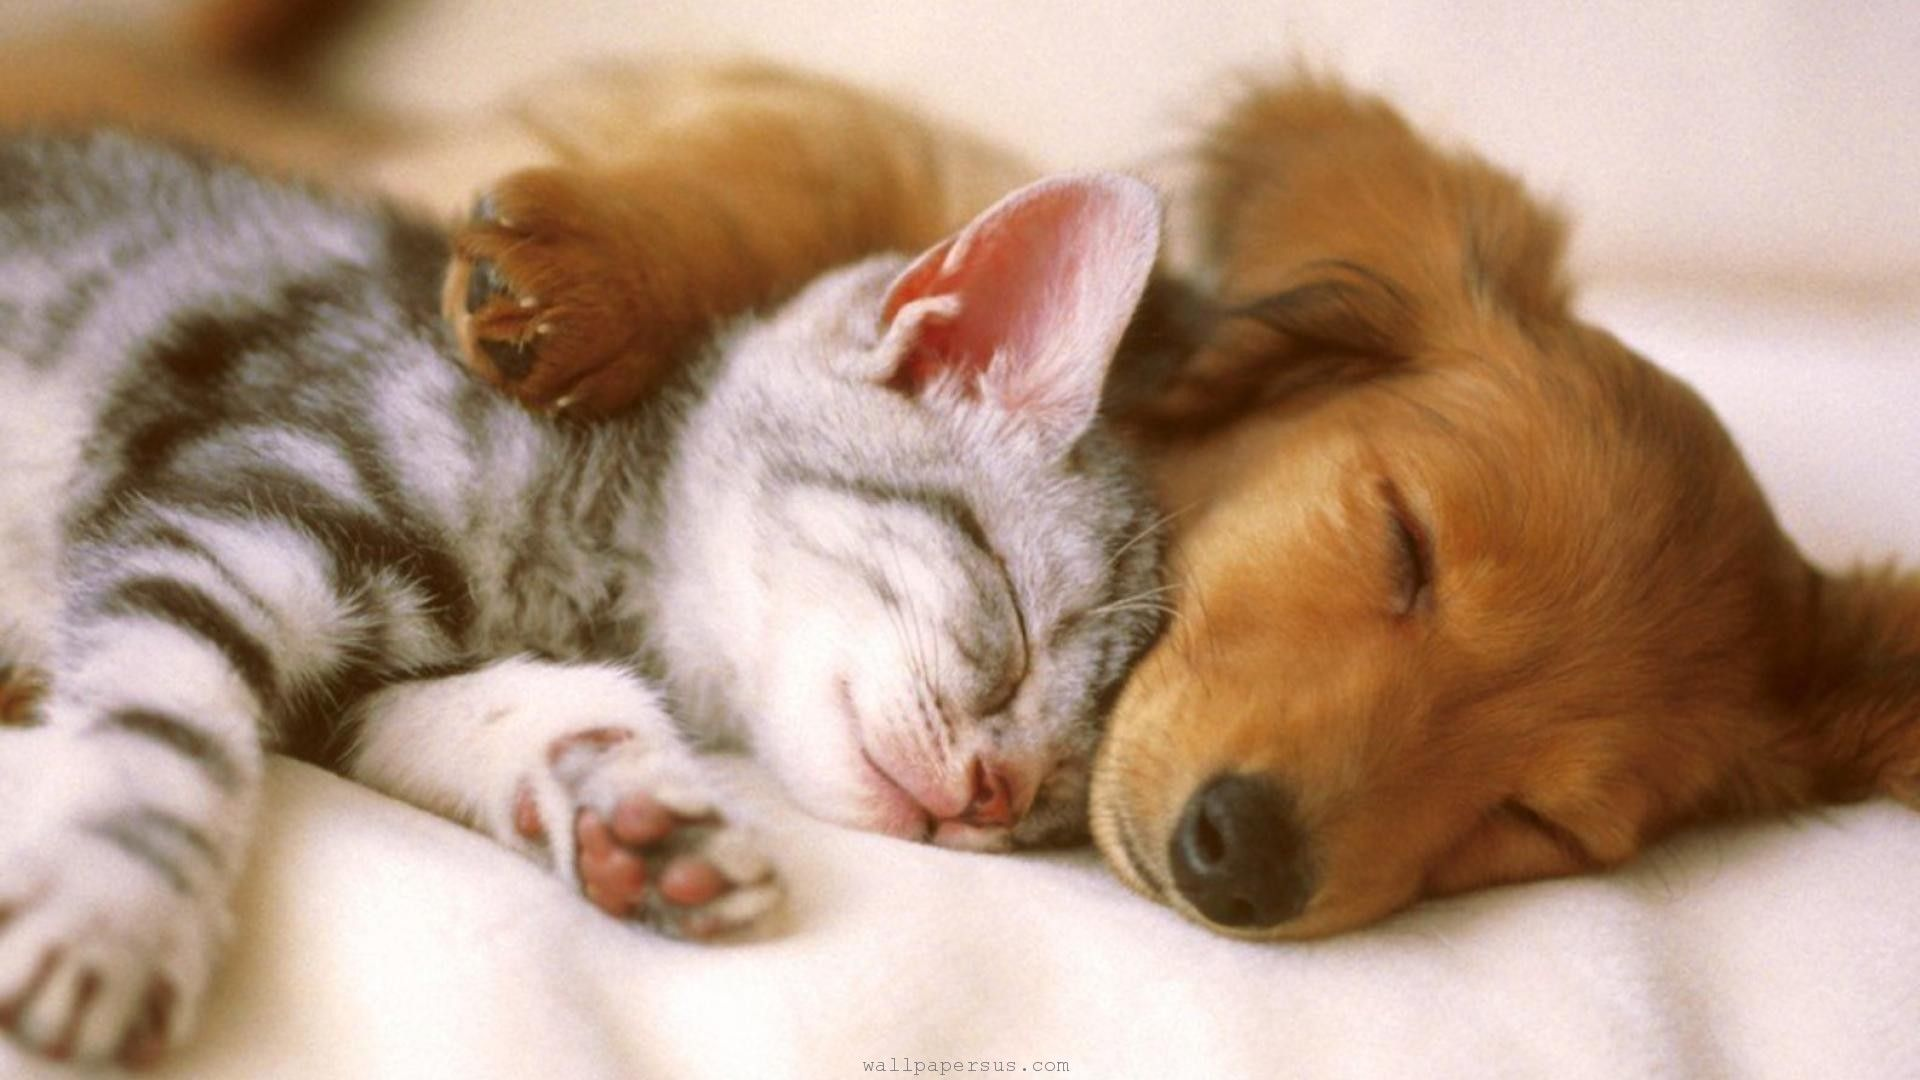 Kitten And Puppy Sleeping Dogs Hugging Kittens And Puppies Animals Friendship